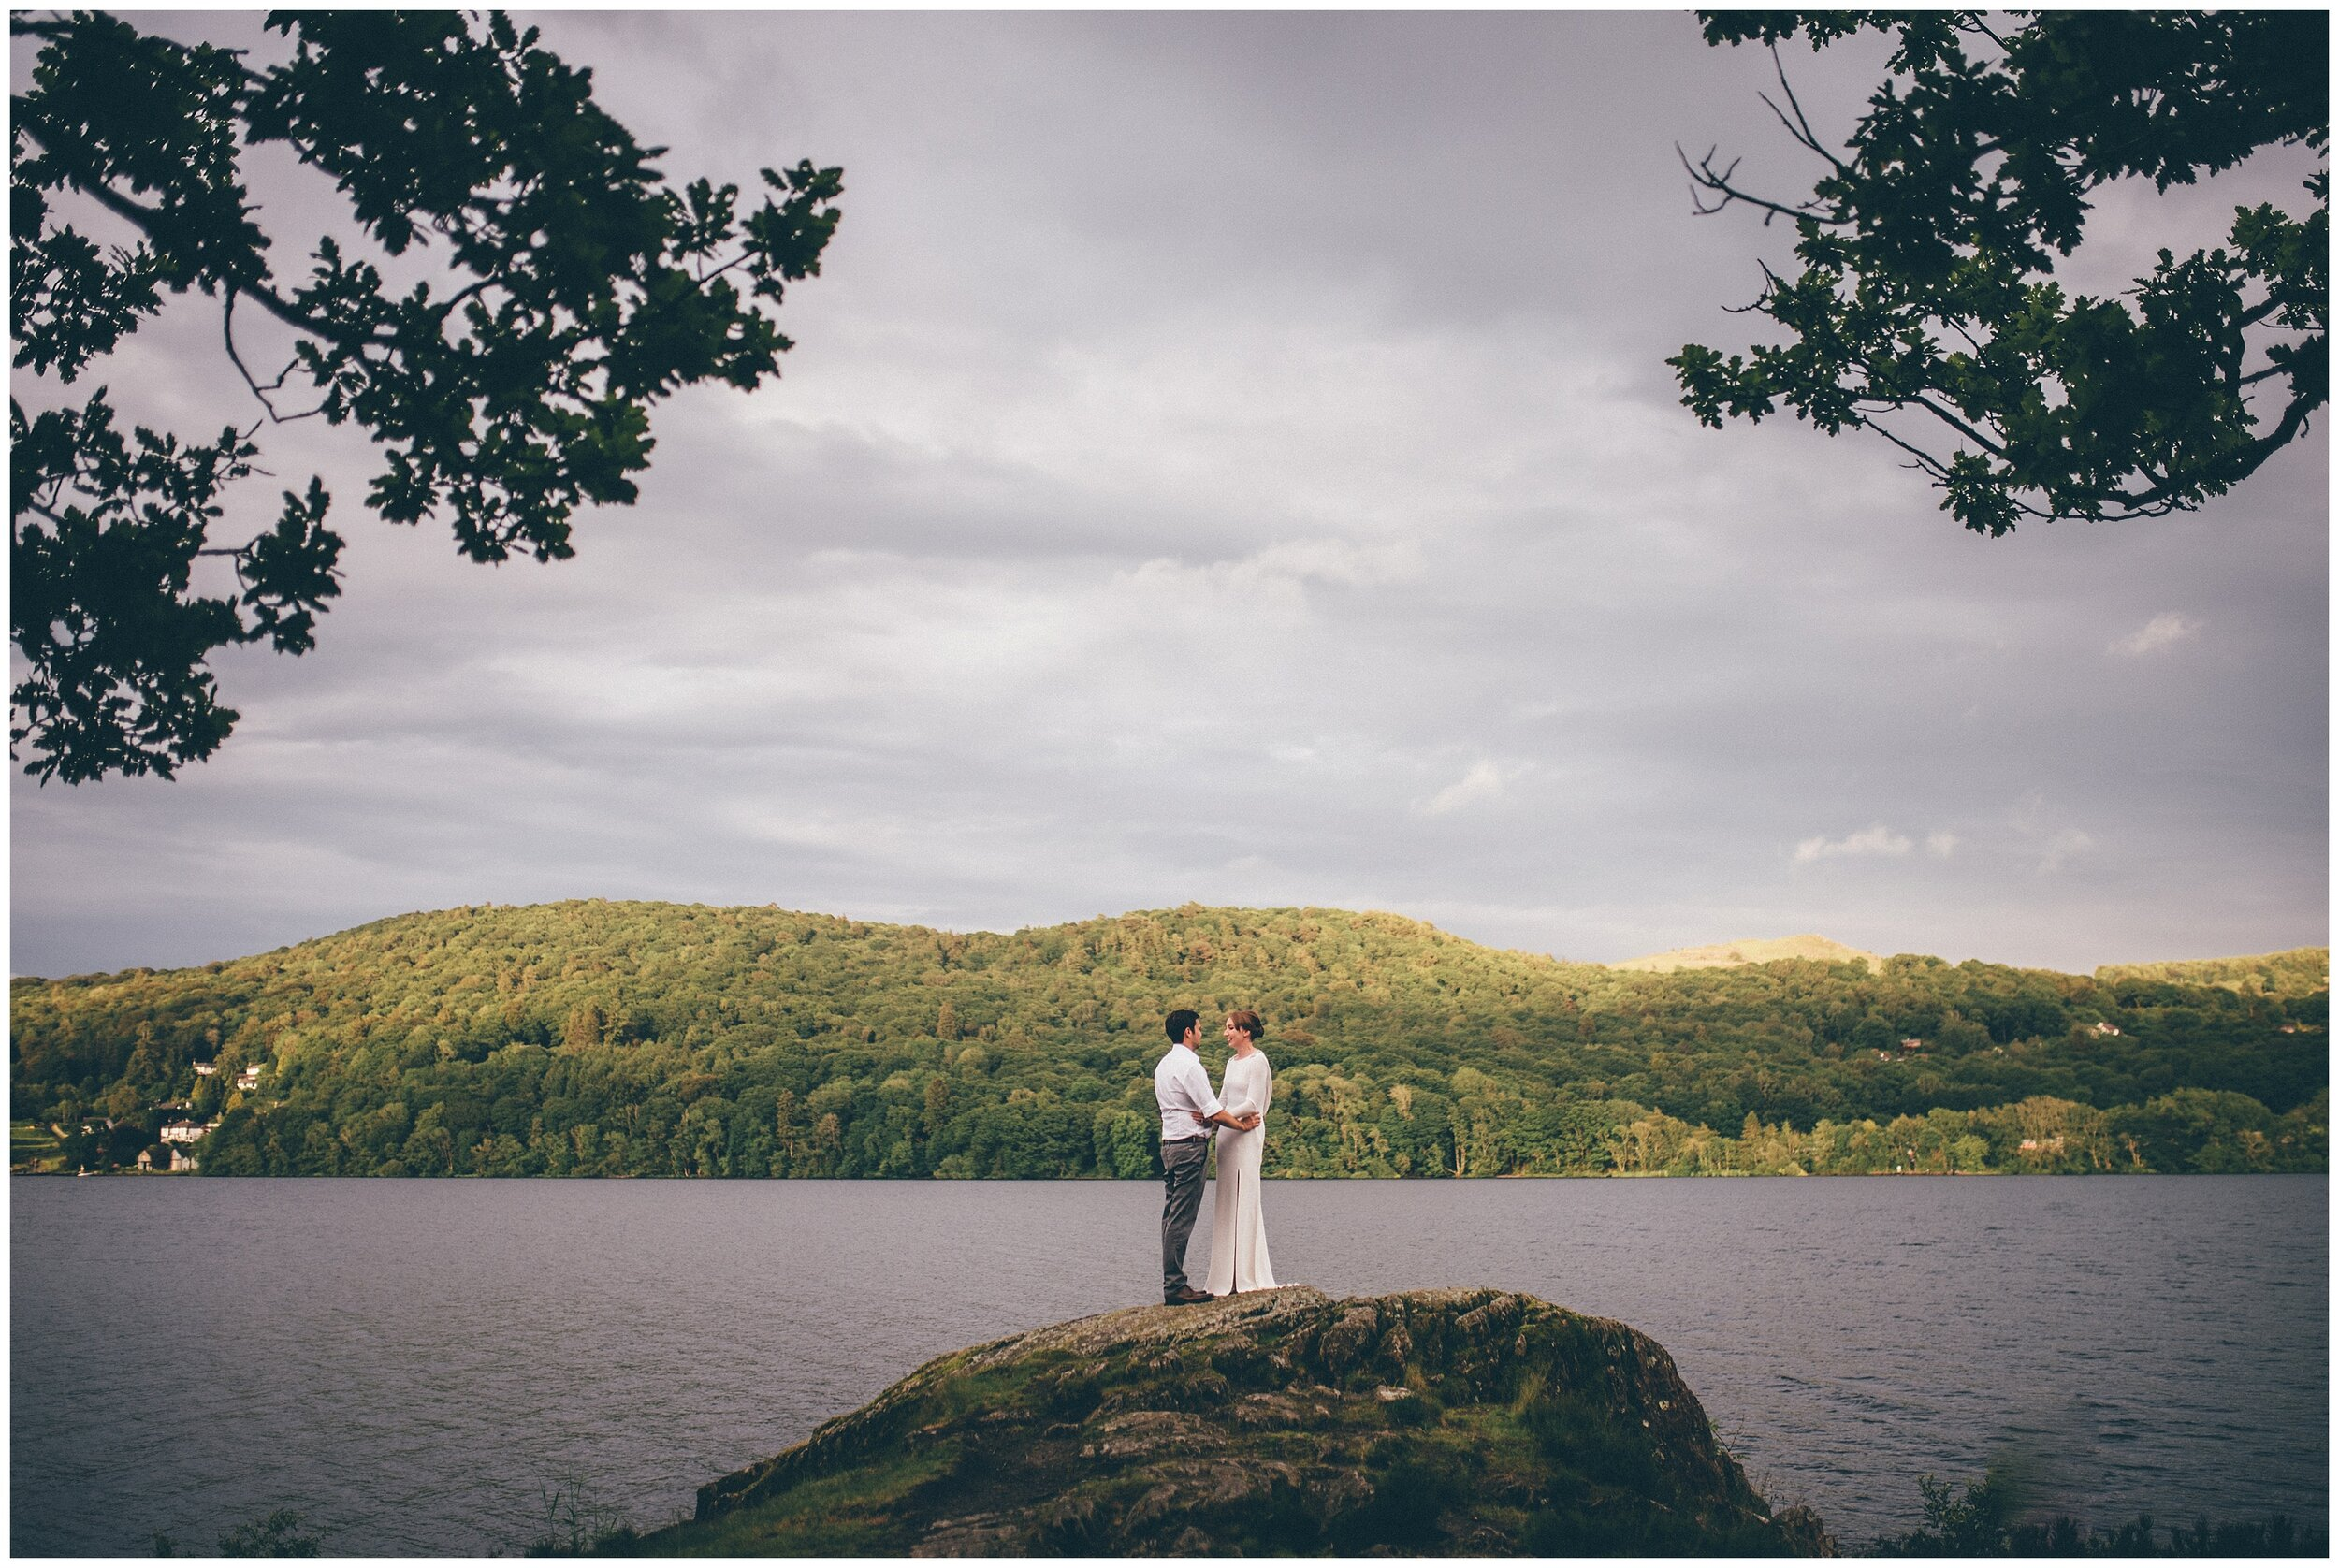 Wedding photography at Grubbins Point in the Lake District.